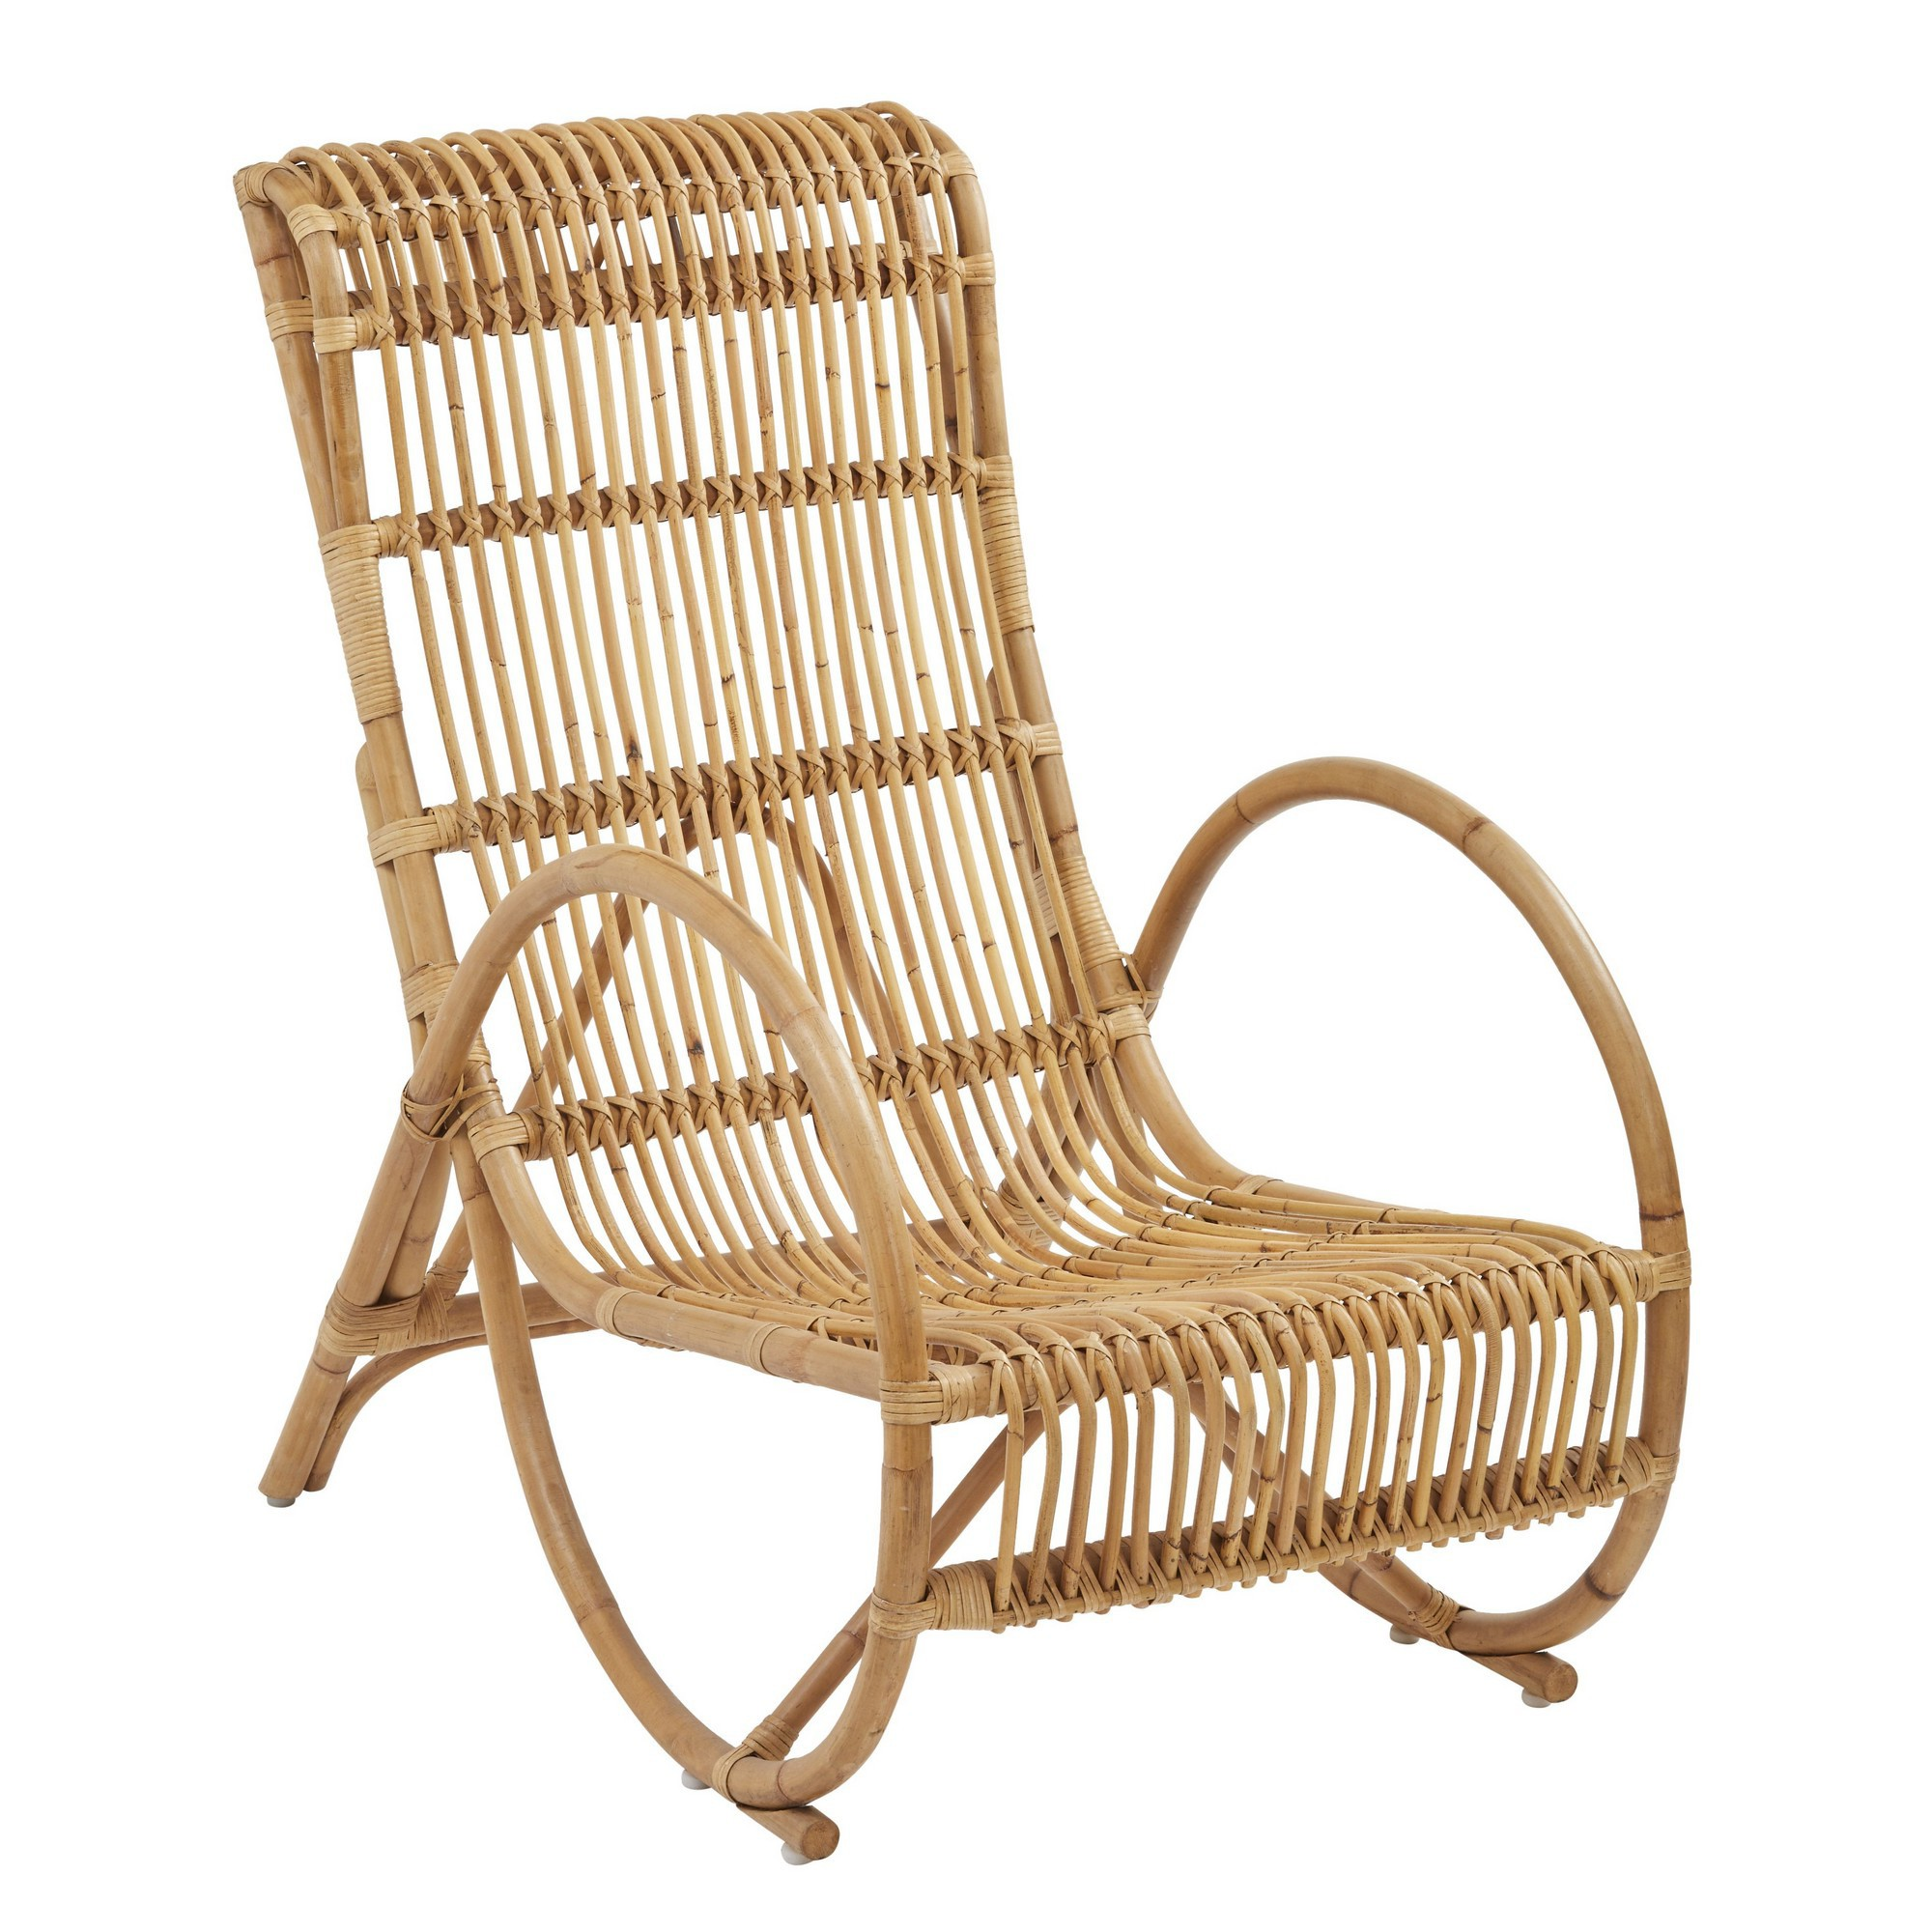 Mantra Rattan Lounge Chair